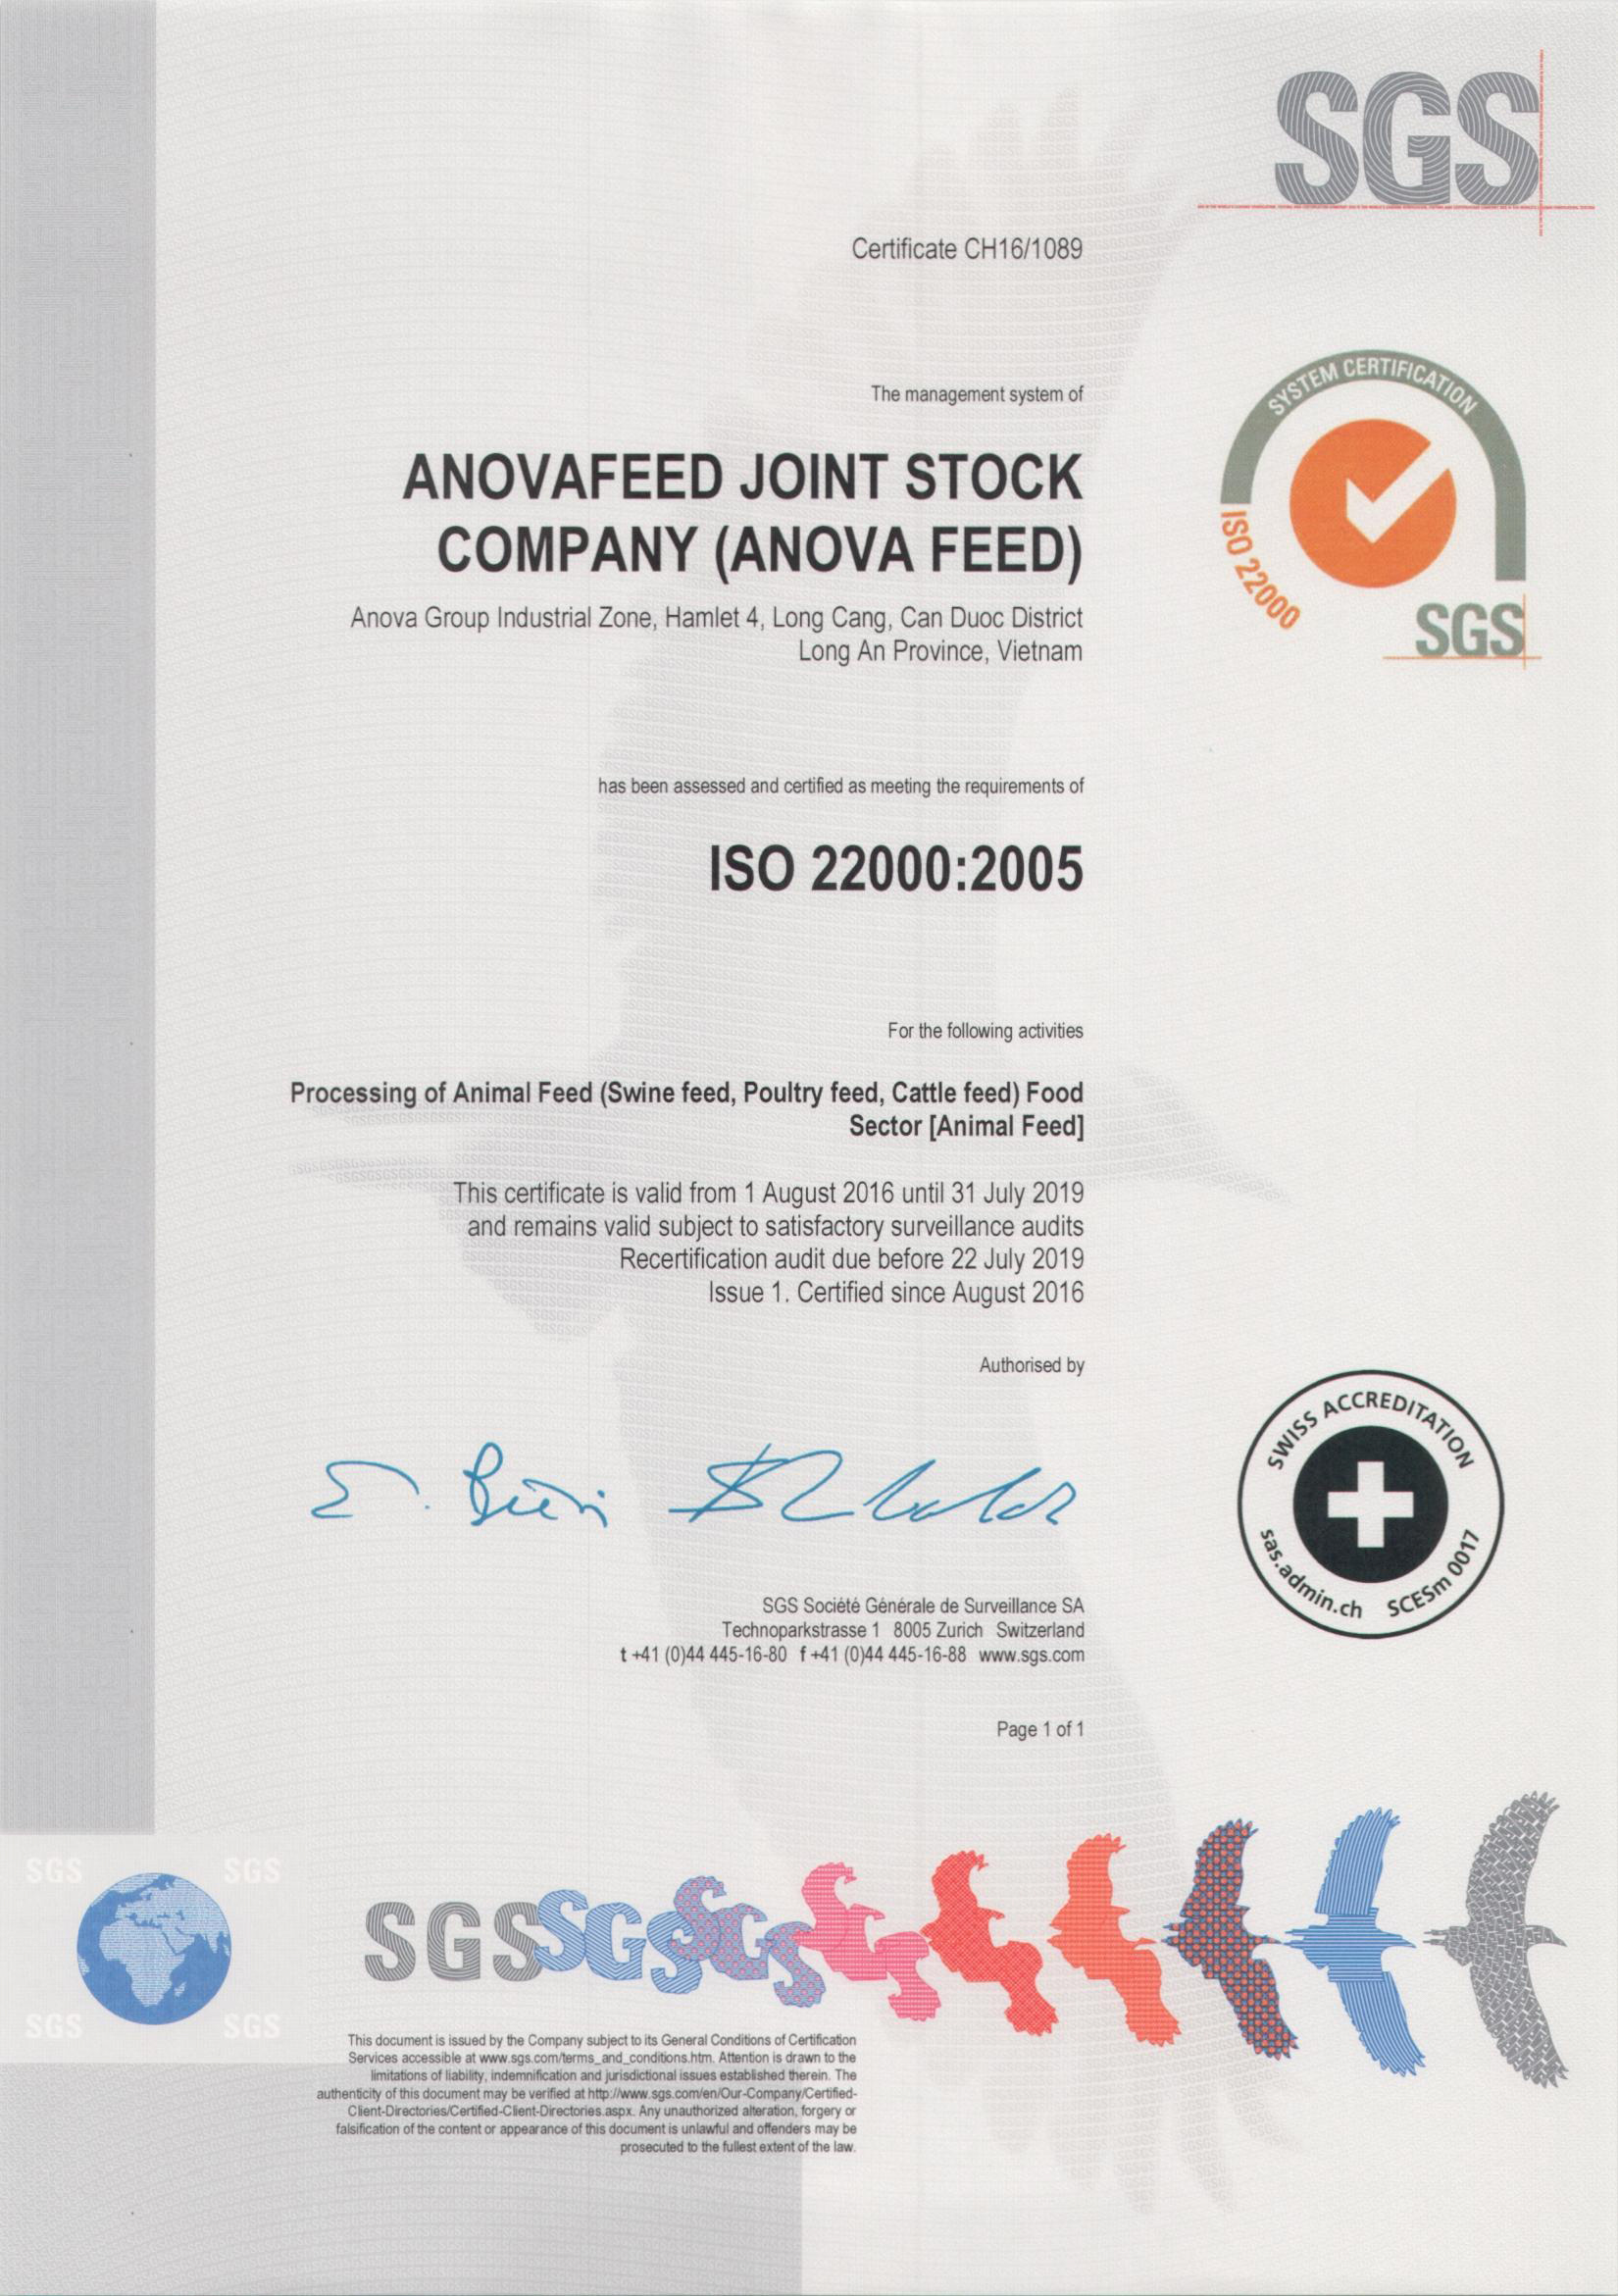 ISO 22000 : 2005 certificate for safe food management systems